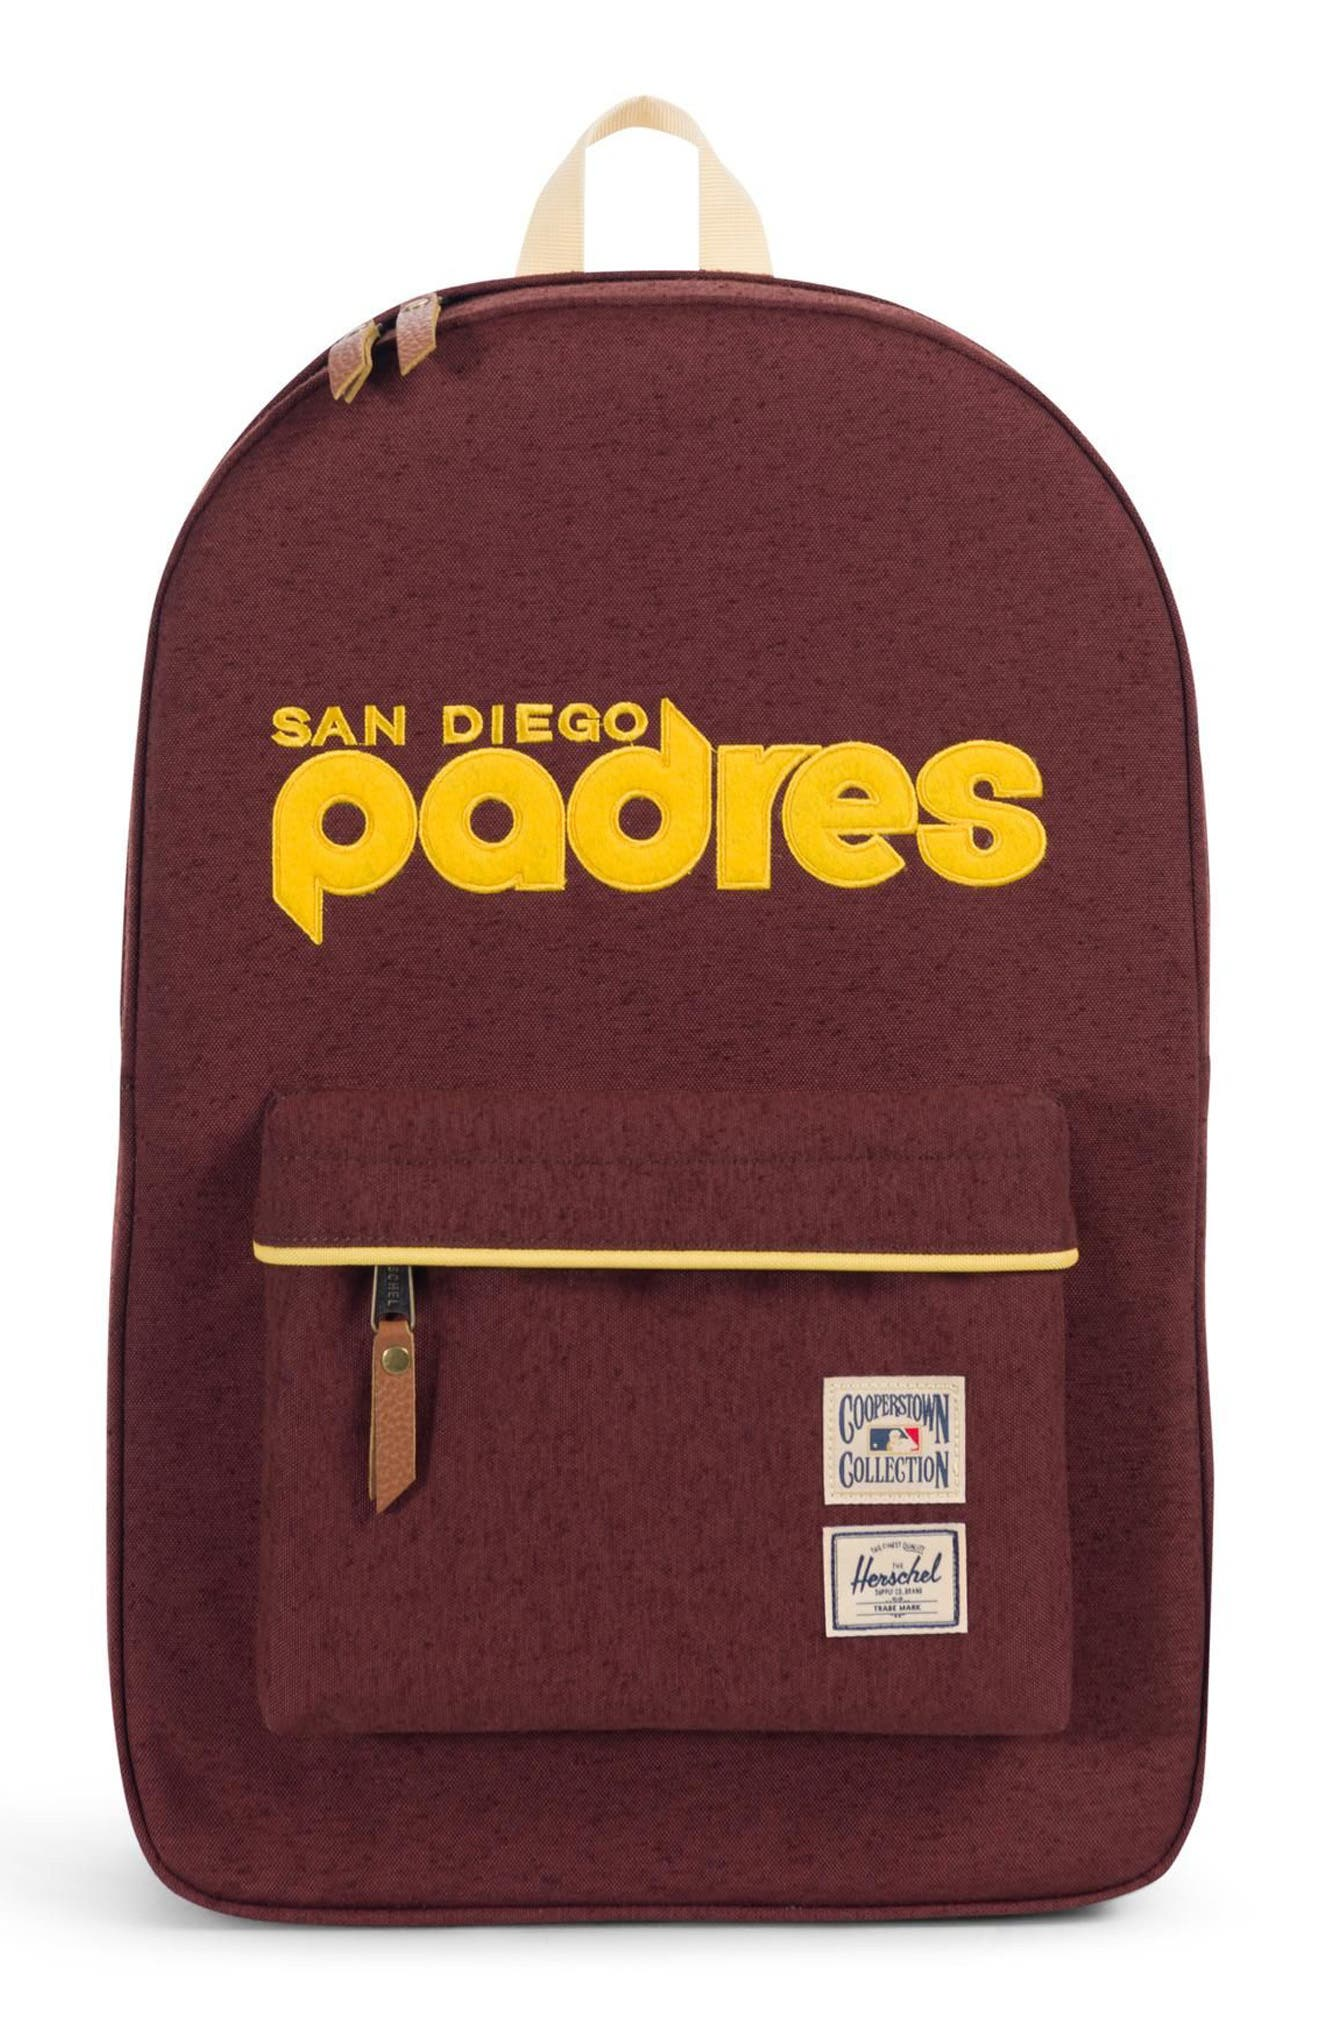 HERITAGE - MLB COOPERSTOWN COLLECTION BACKPACK - BROWN